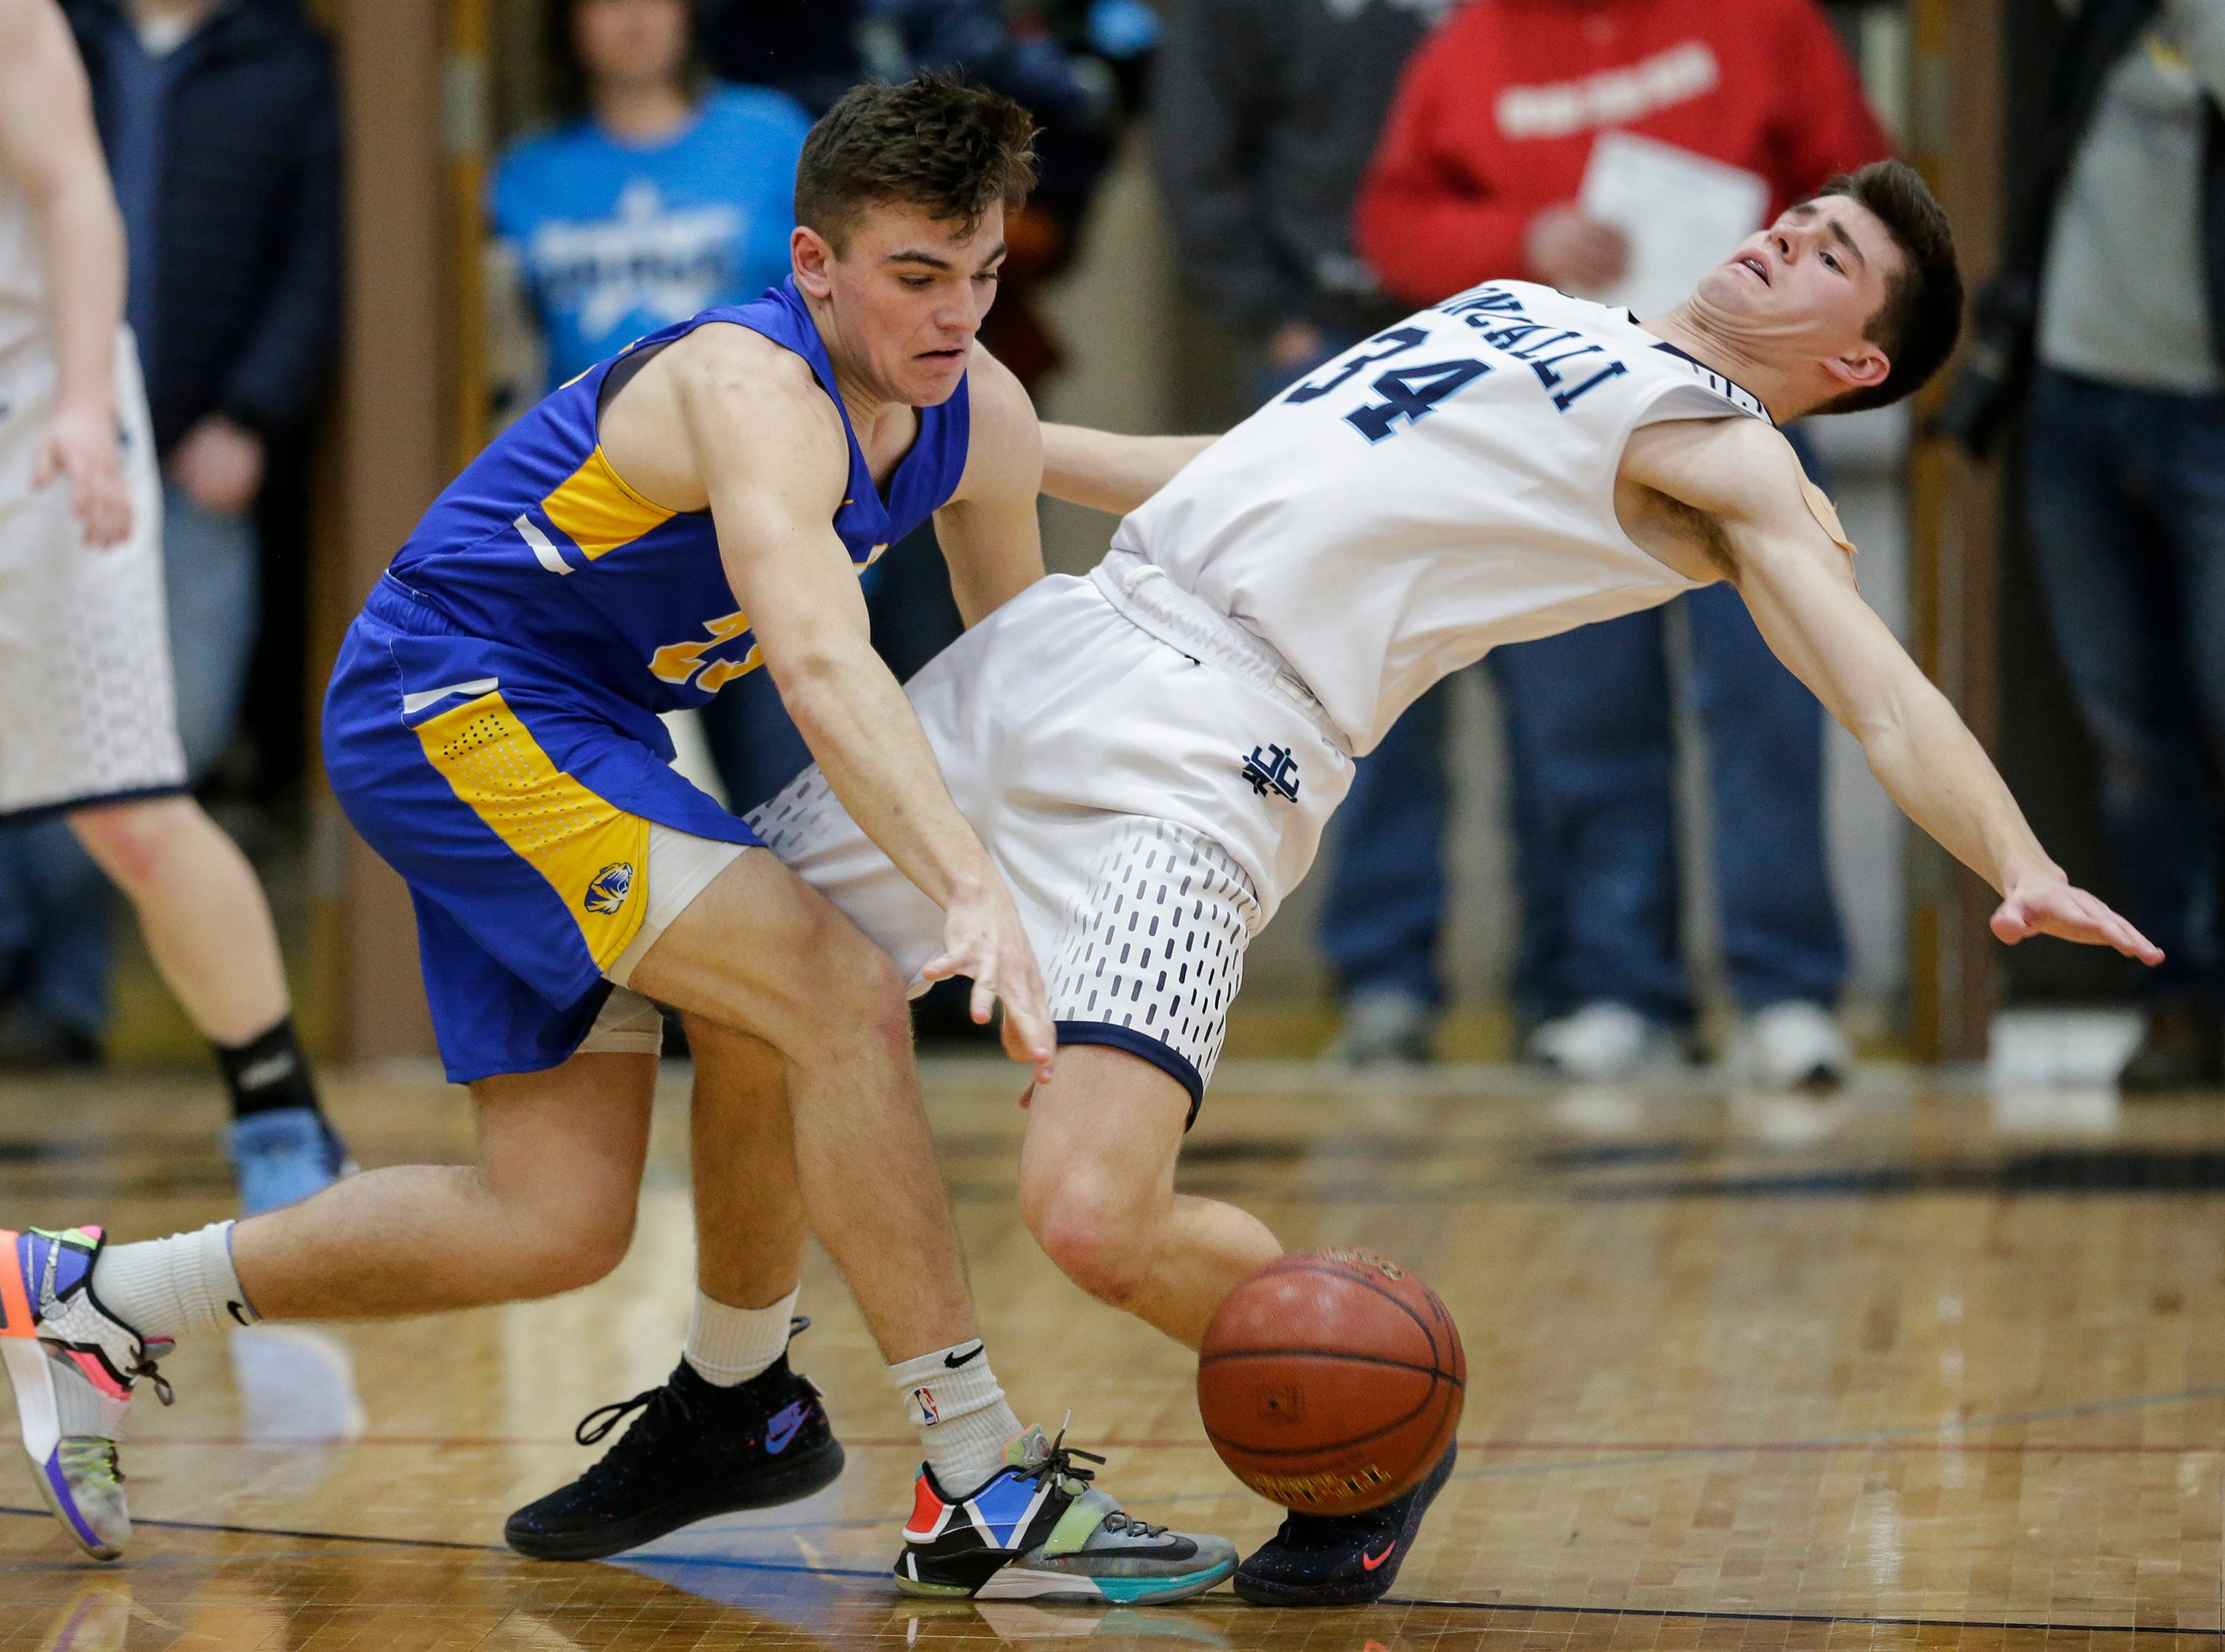 Howards Grove's Dalton Free (23) fouls Roncalli's Ian Behringer (34) in a WIAA Division 4 sectional semifinal at New Holstein High School Thursday, March 7, 2019, in New Holstein, Wis. Joshua Clark/USA TODAY NETWORK-Wisconsin